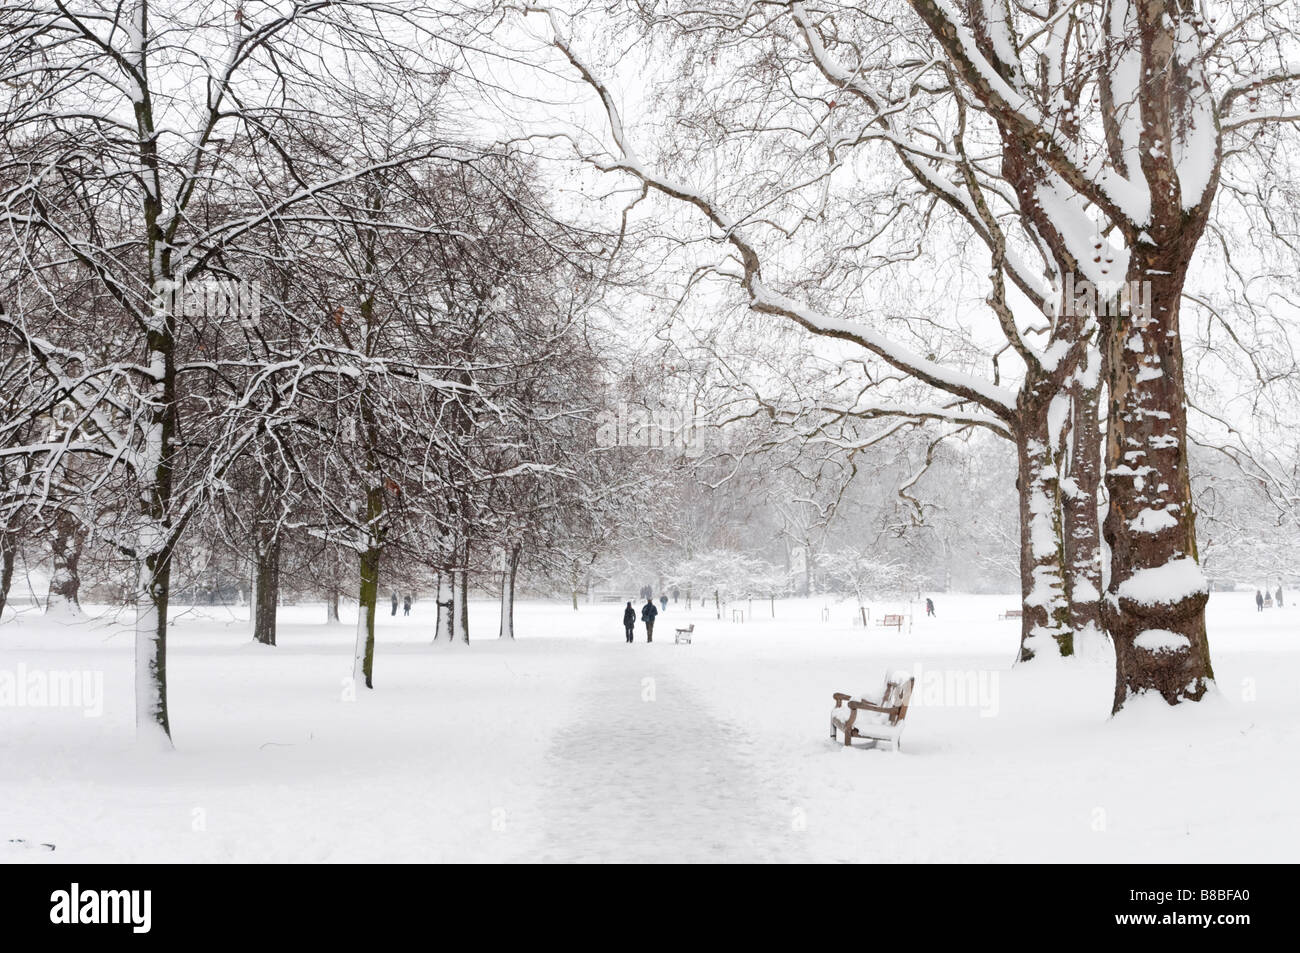 St James's Park covered in snow, London, England, UK - Stock Image